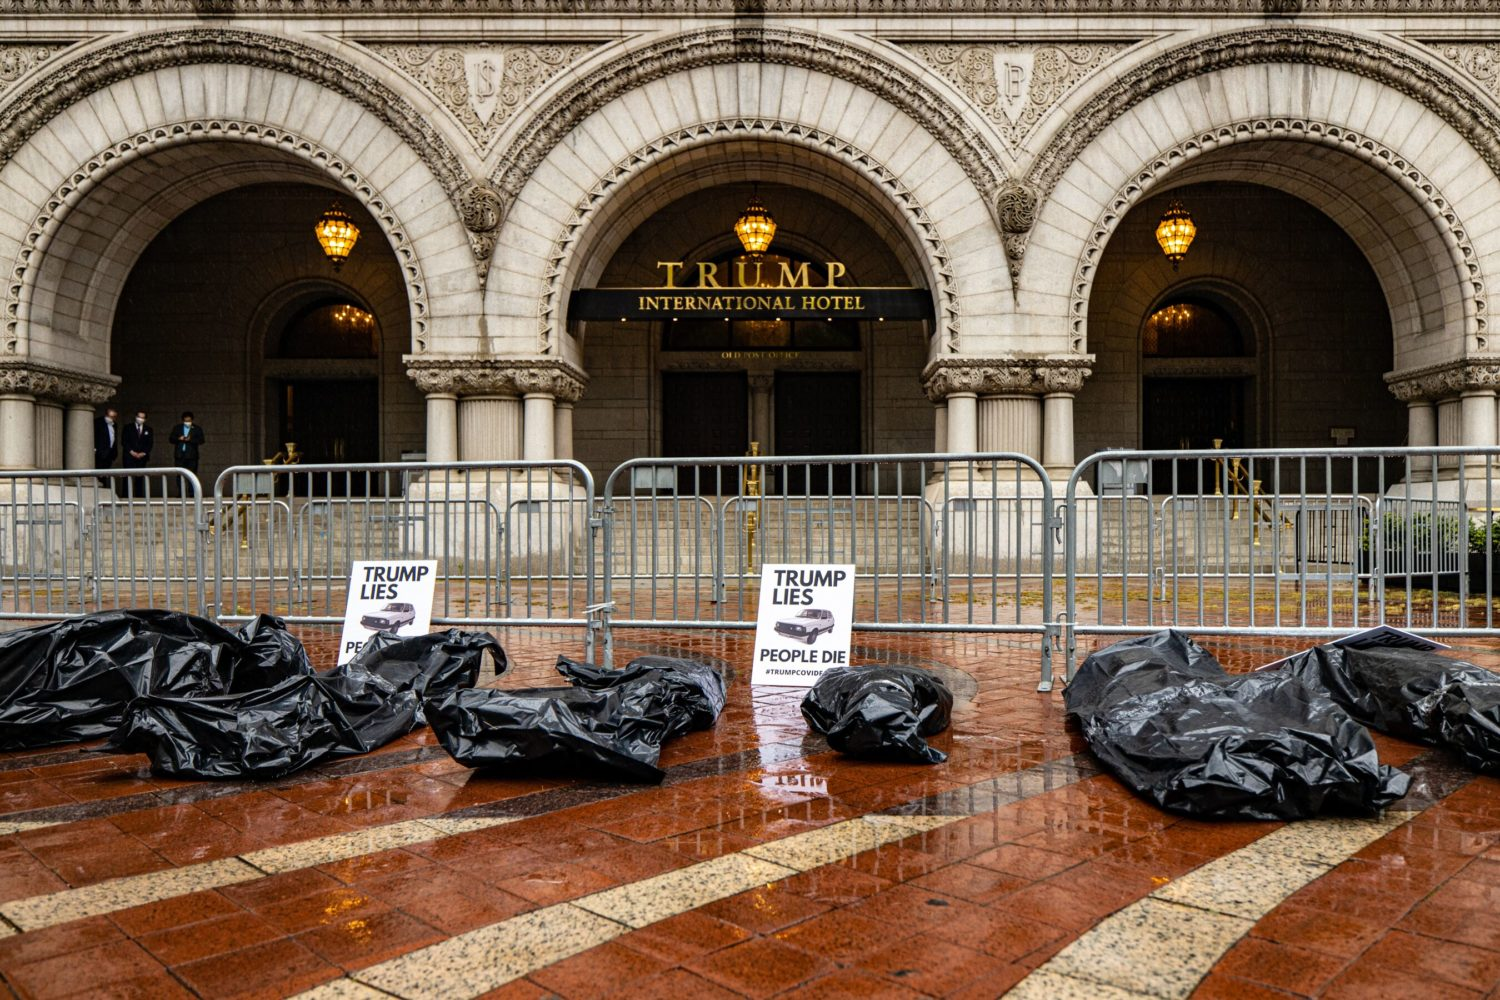 Body Bag demonstration outside Trump International Hotel in Northwest D.C